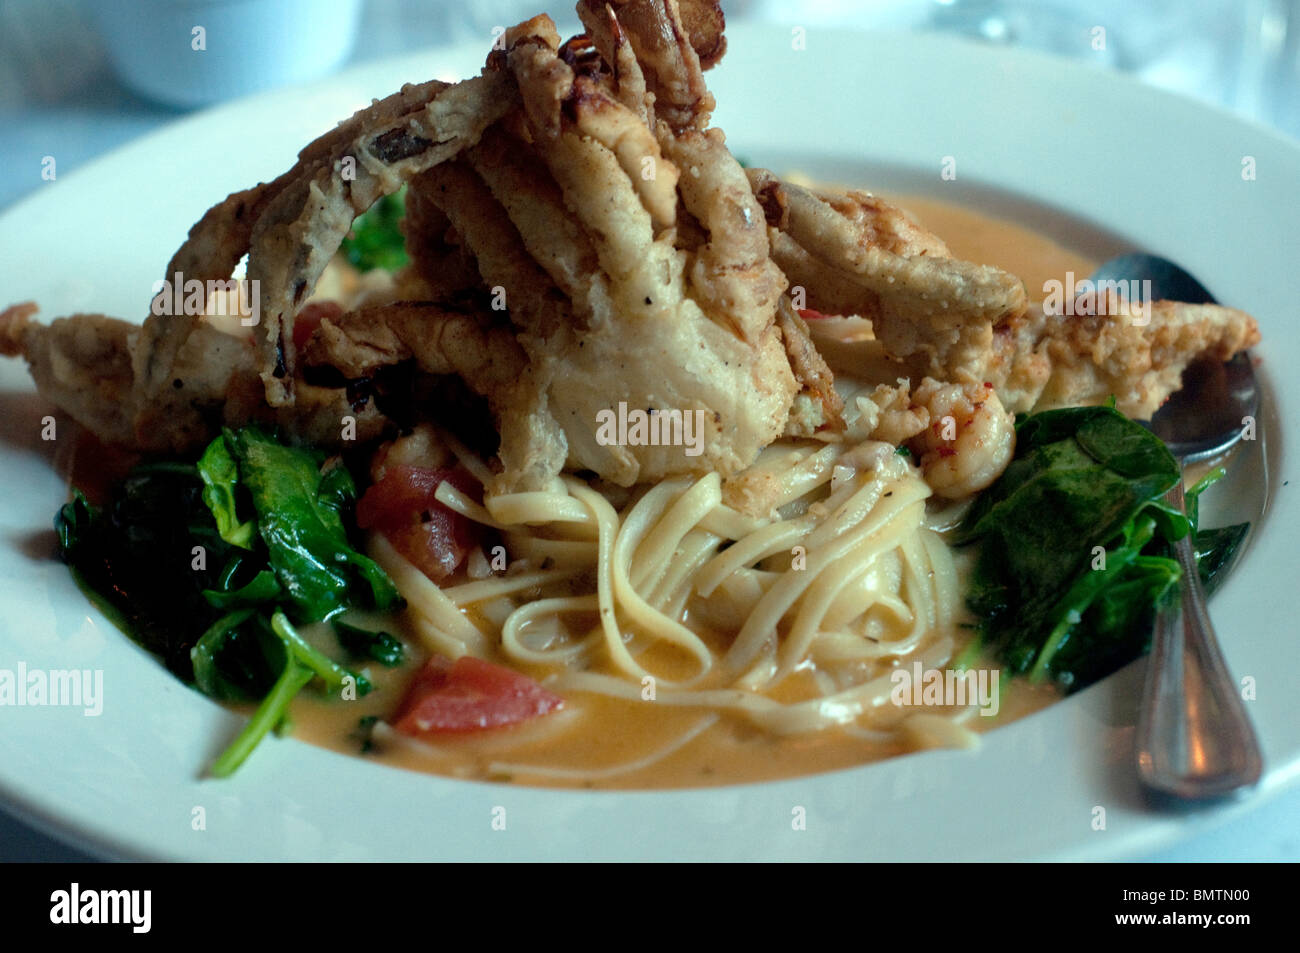 Softshell Crab Linguine With Crawfish Sauce Served At The Famous 'irene's  Cuisine' Crayfish Of